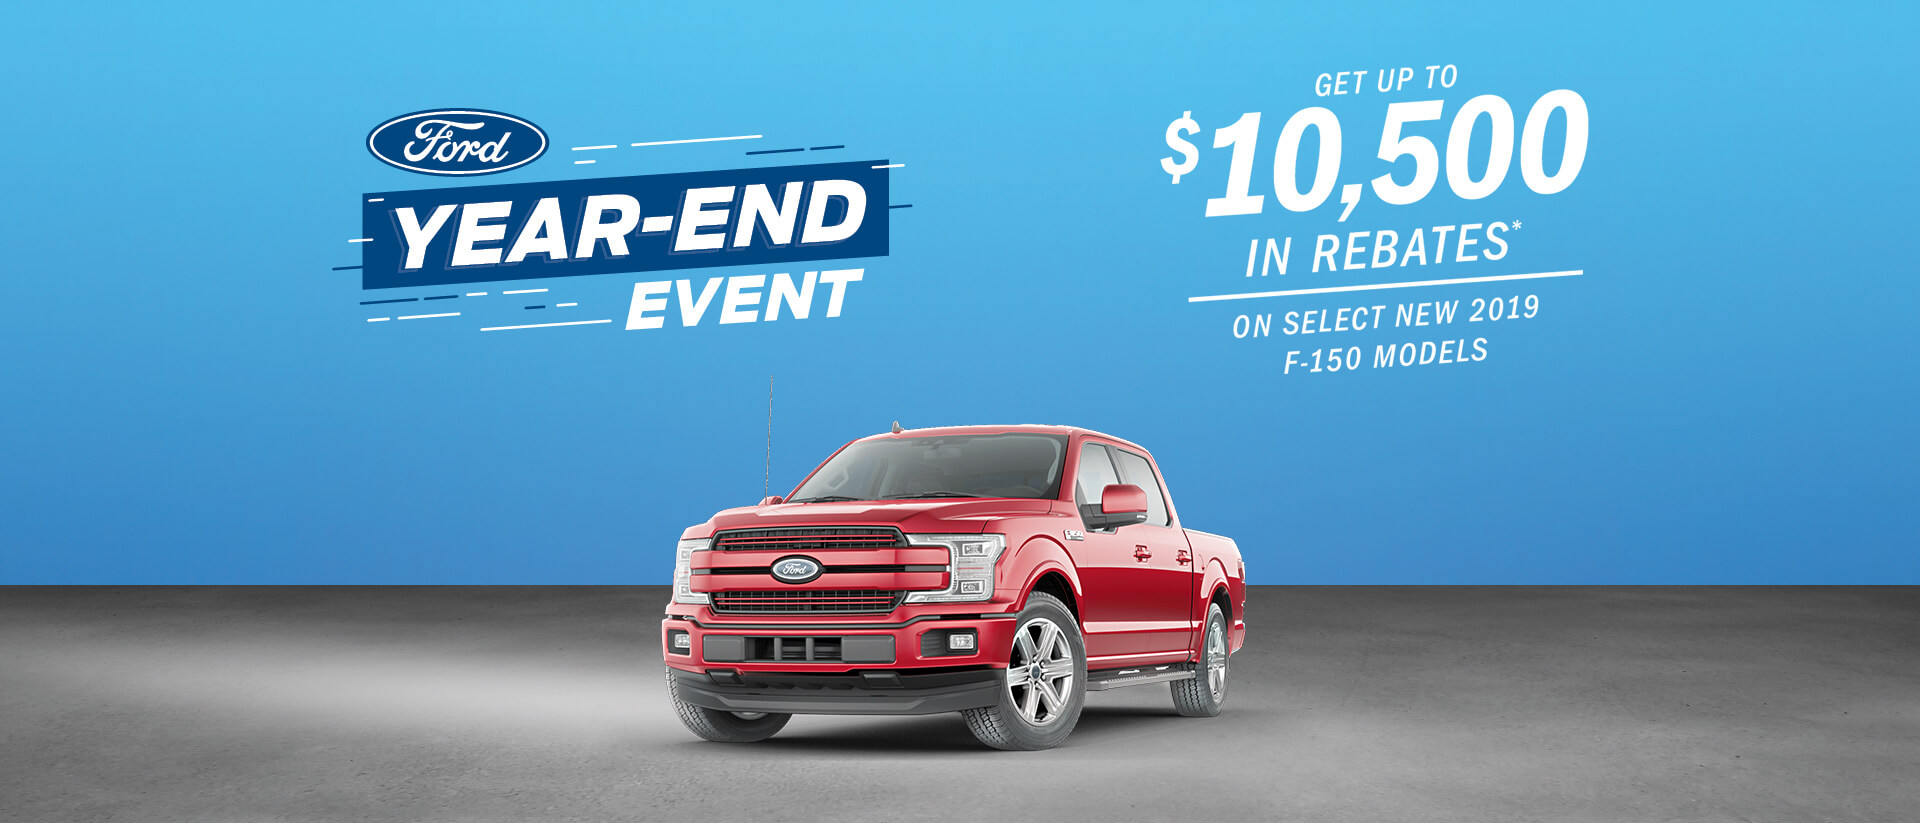 Ford incentive offer